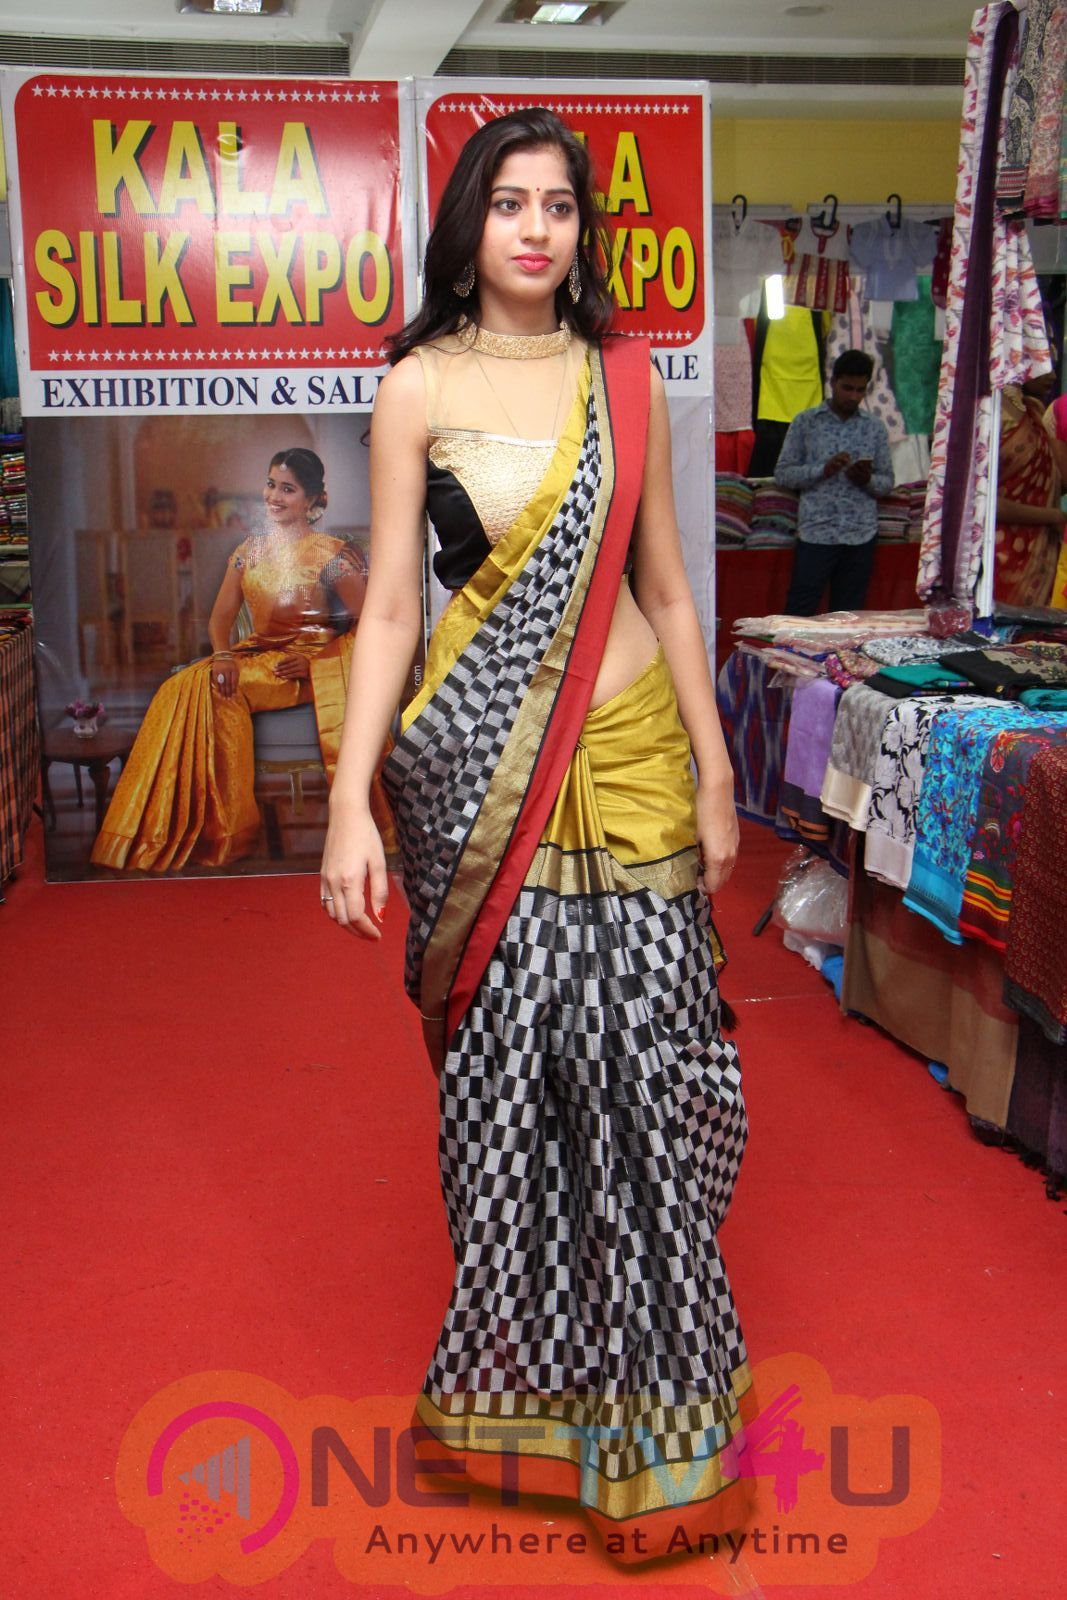 Kala Silk Handloom Expo Begins At Himayatnagar Fashion Show Added A Glitz And Glamour To The Occasion